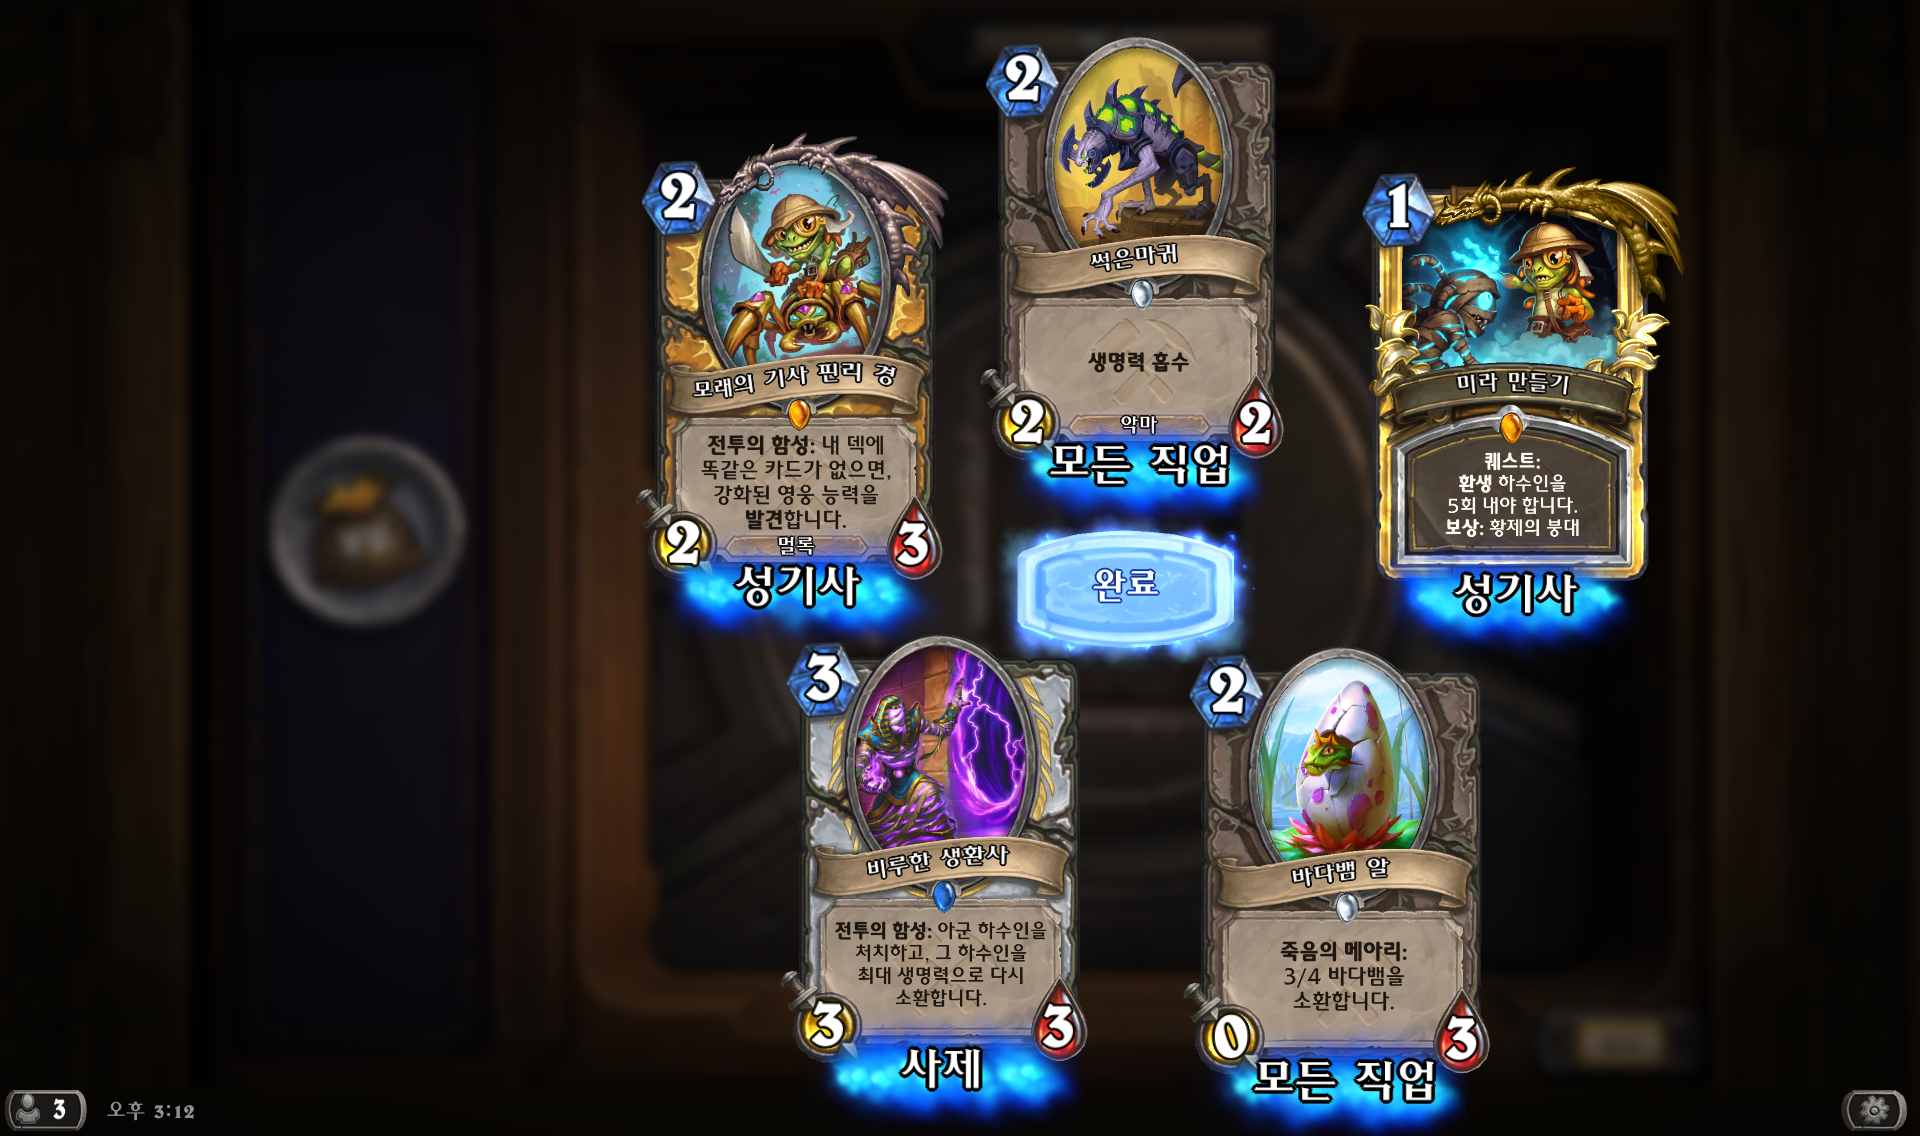 Hearthstone Screenshot 09-13-19 15.12.22.png